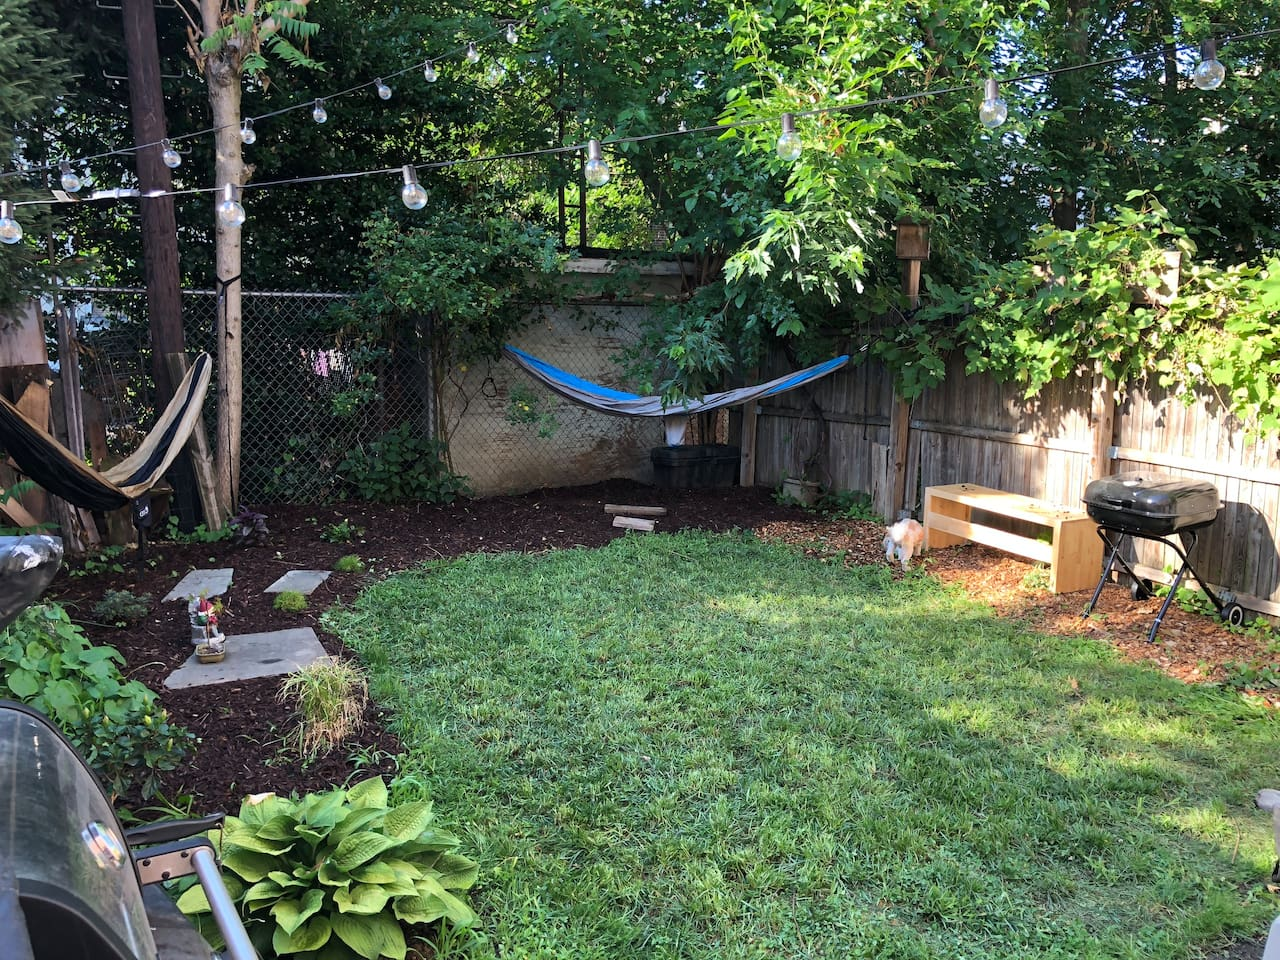 Private Backyard with BBQ and Patio (dog not included)